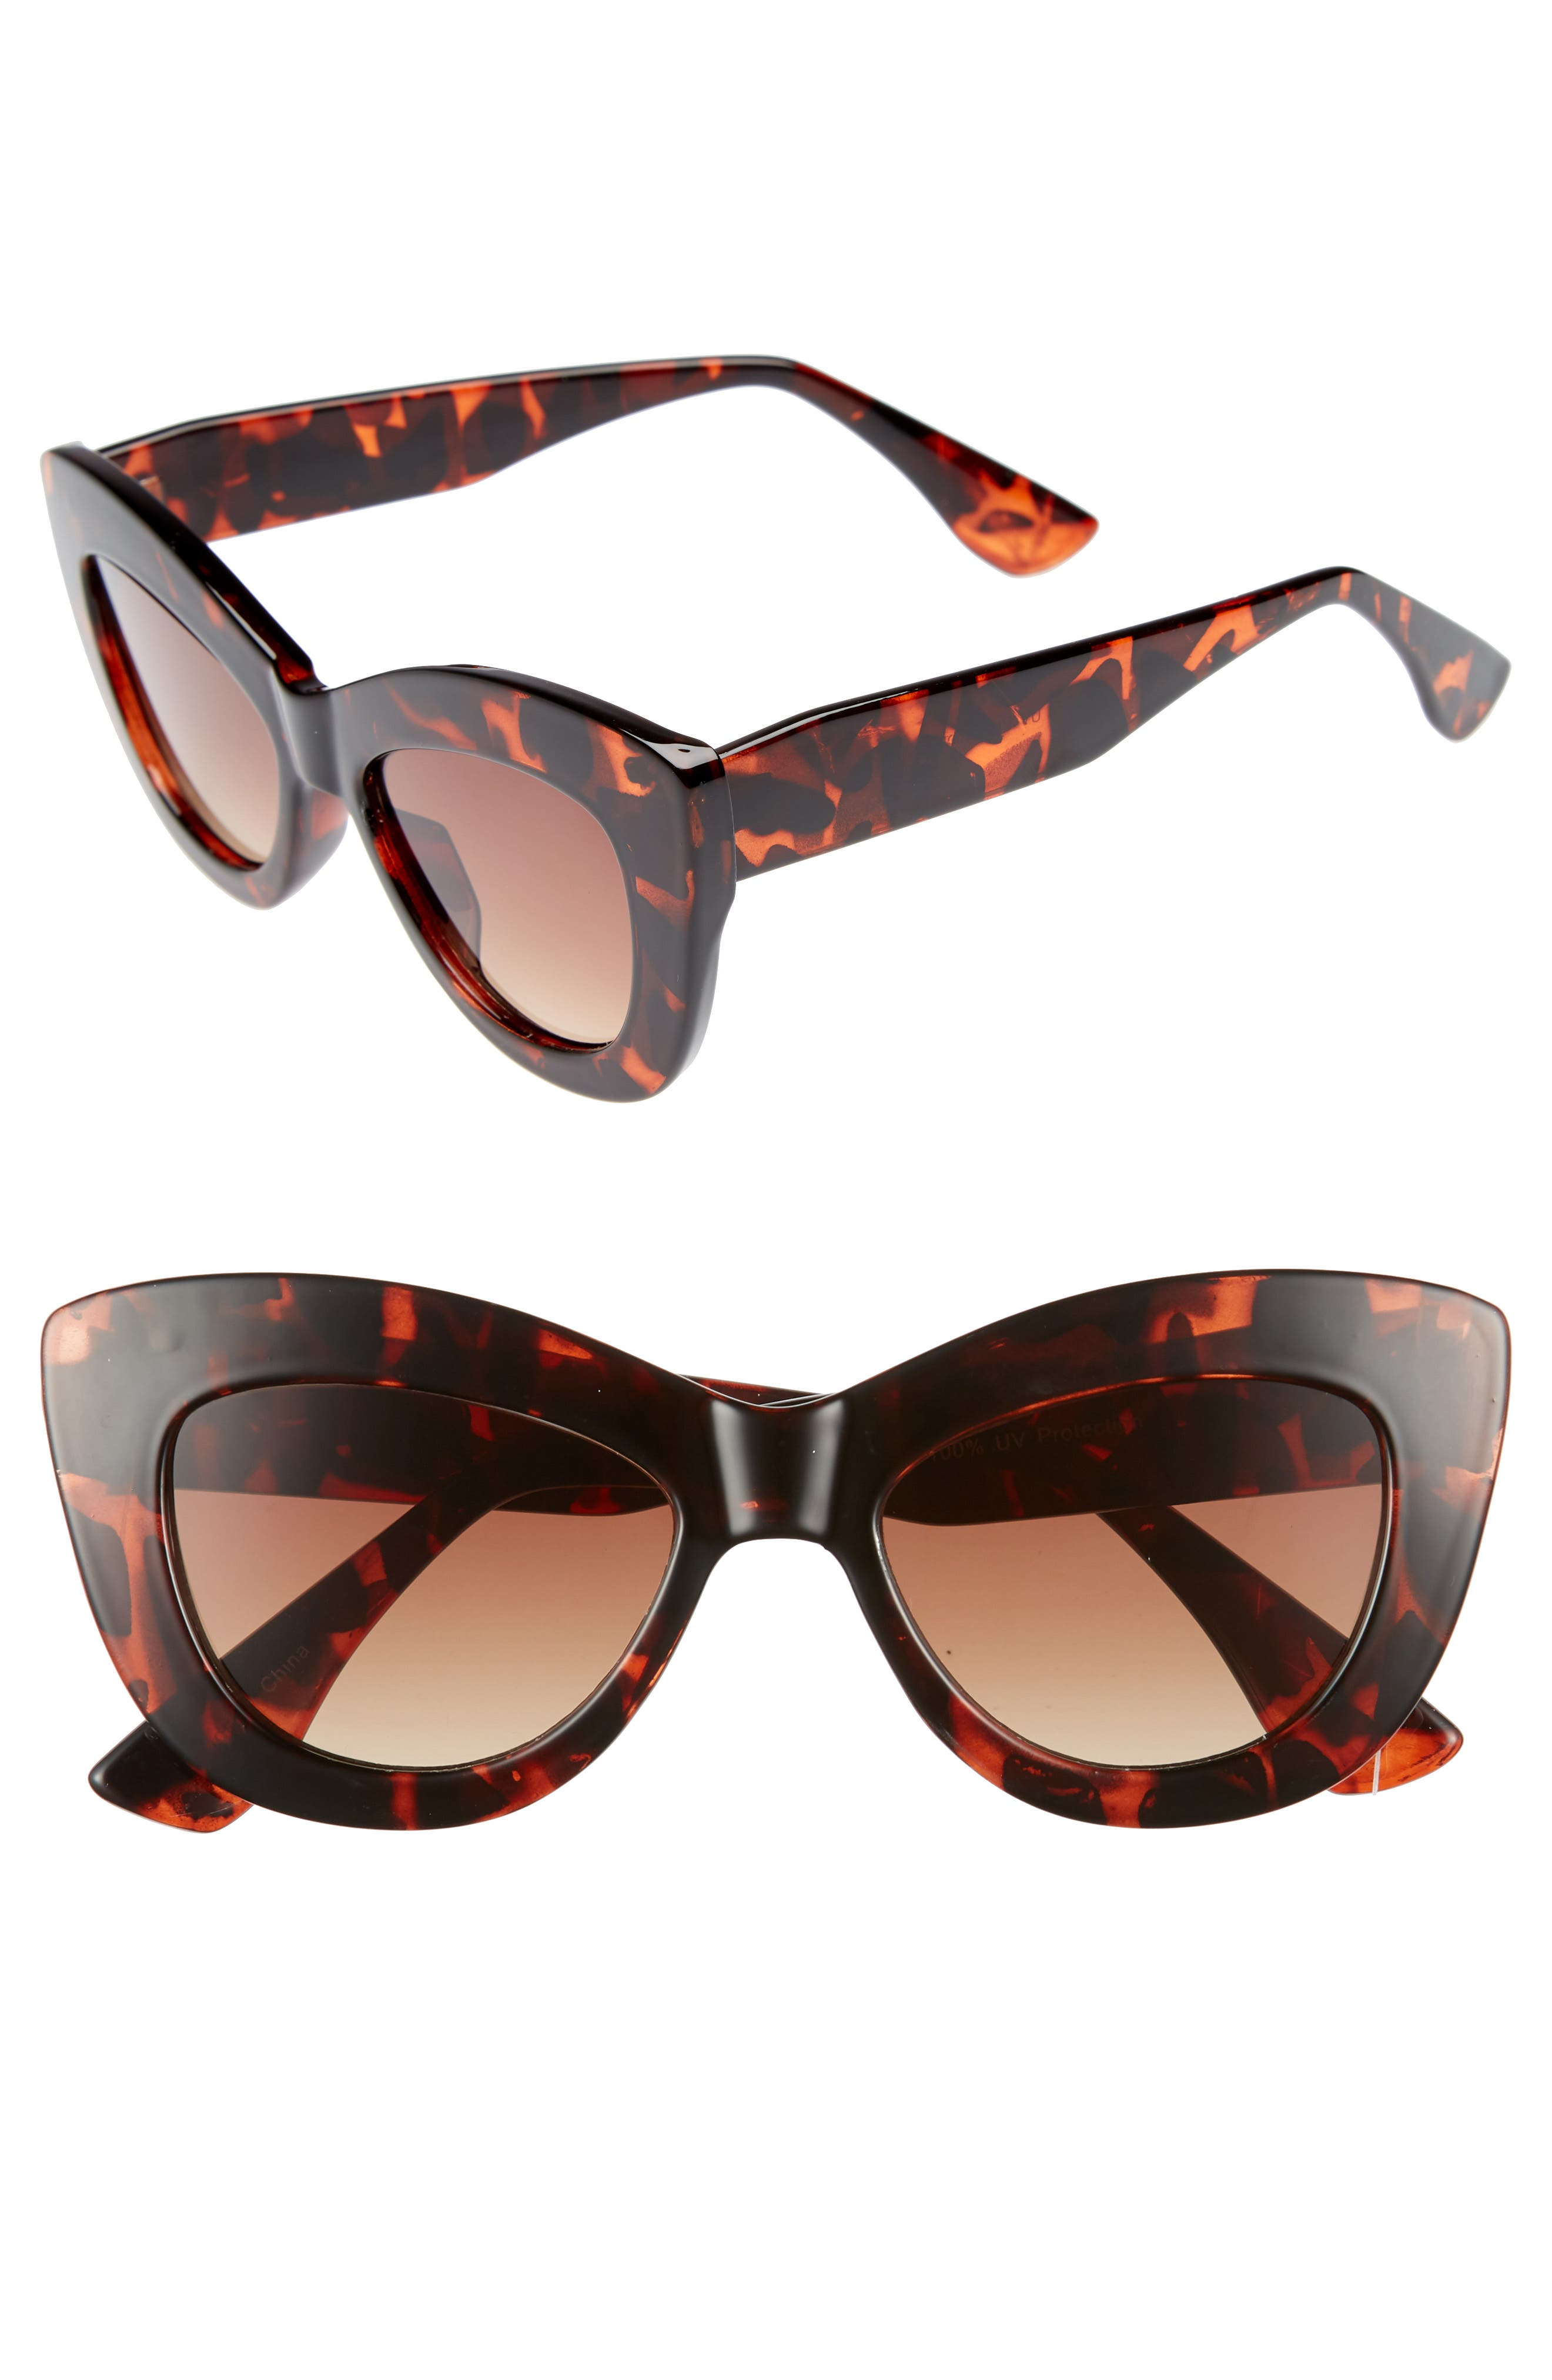 65mm Cat Eye Sunglasses,                         Main,                         color, 200